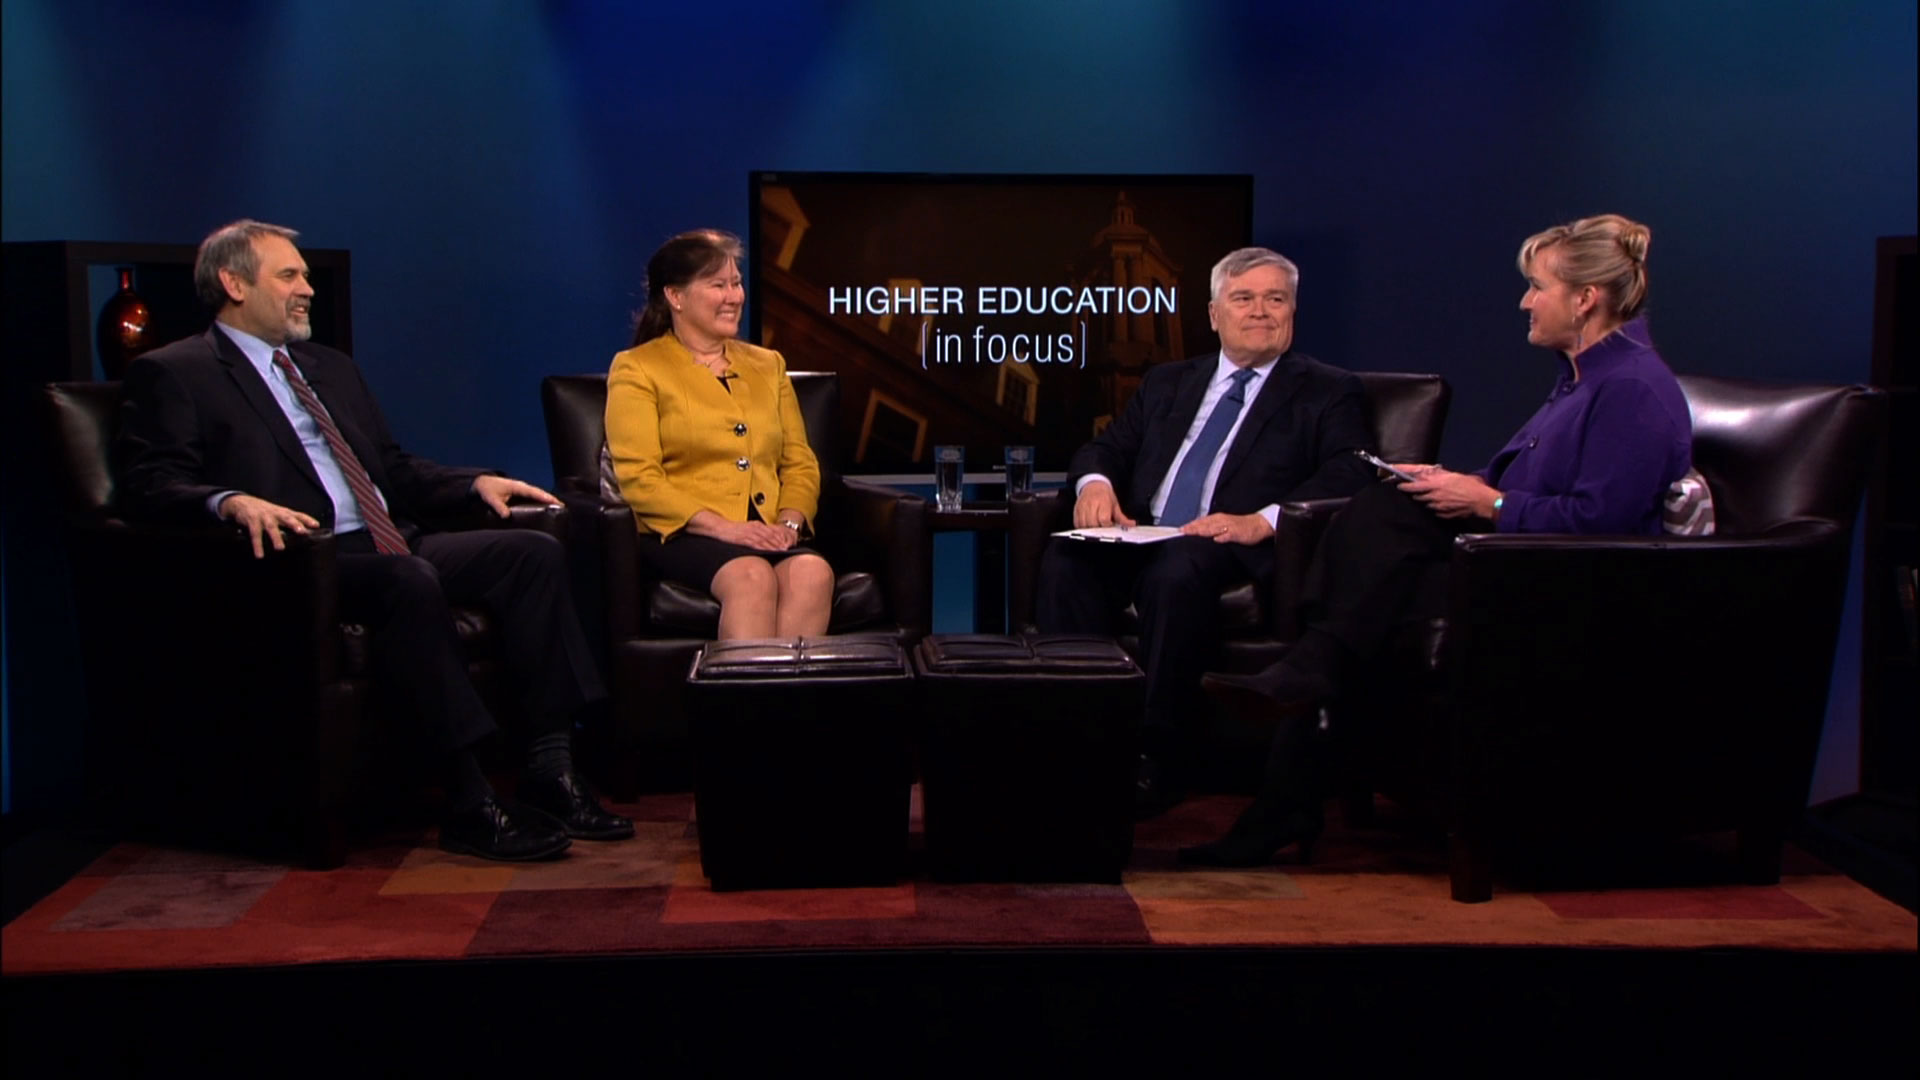 Renata S. Engel and David Christiansen with Eric Baron and Patty Satalia on the set of Higher Education in Focus